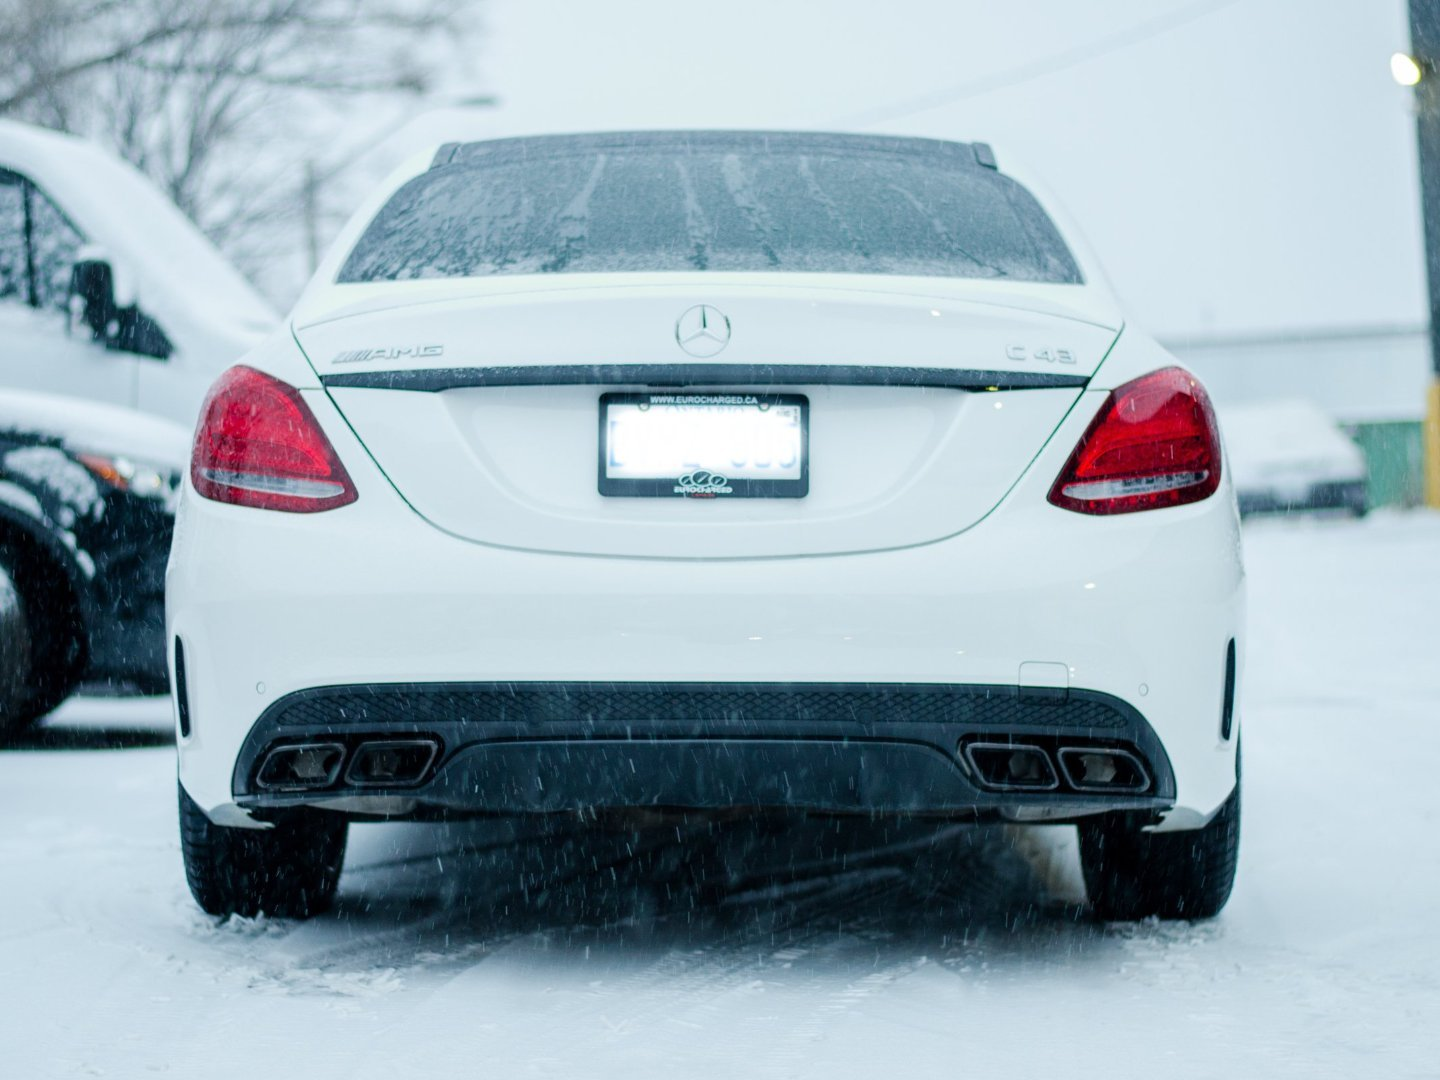 C63 AMG SEDAN CONVERSION DIFFUSER KIT (AMG PKG ONLY) - BODY KIT - Yomato Carbon - Montreal Canada